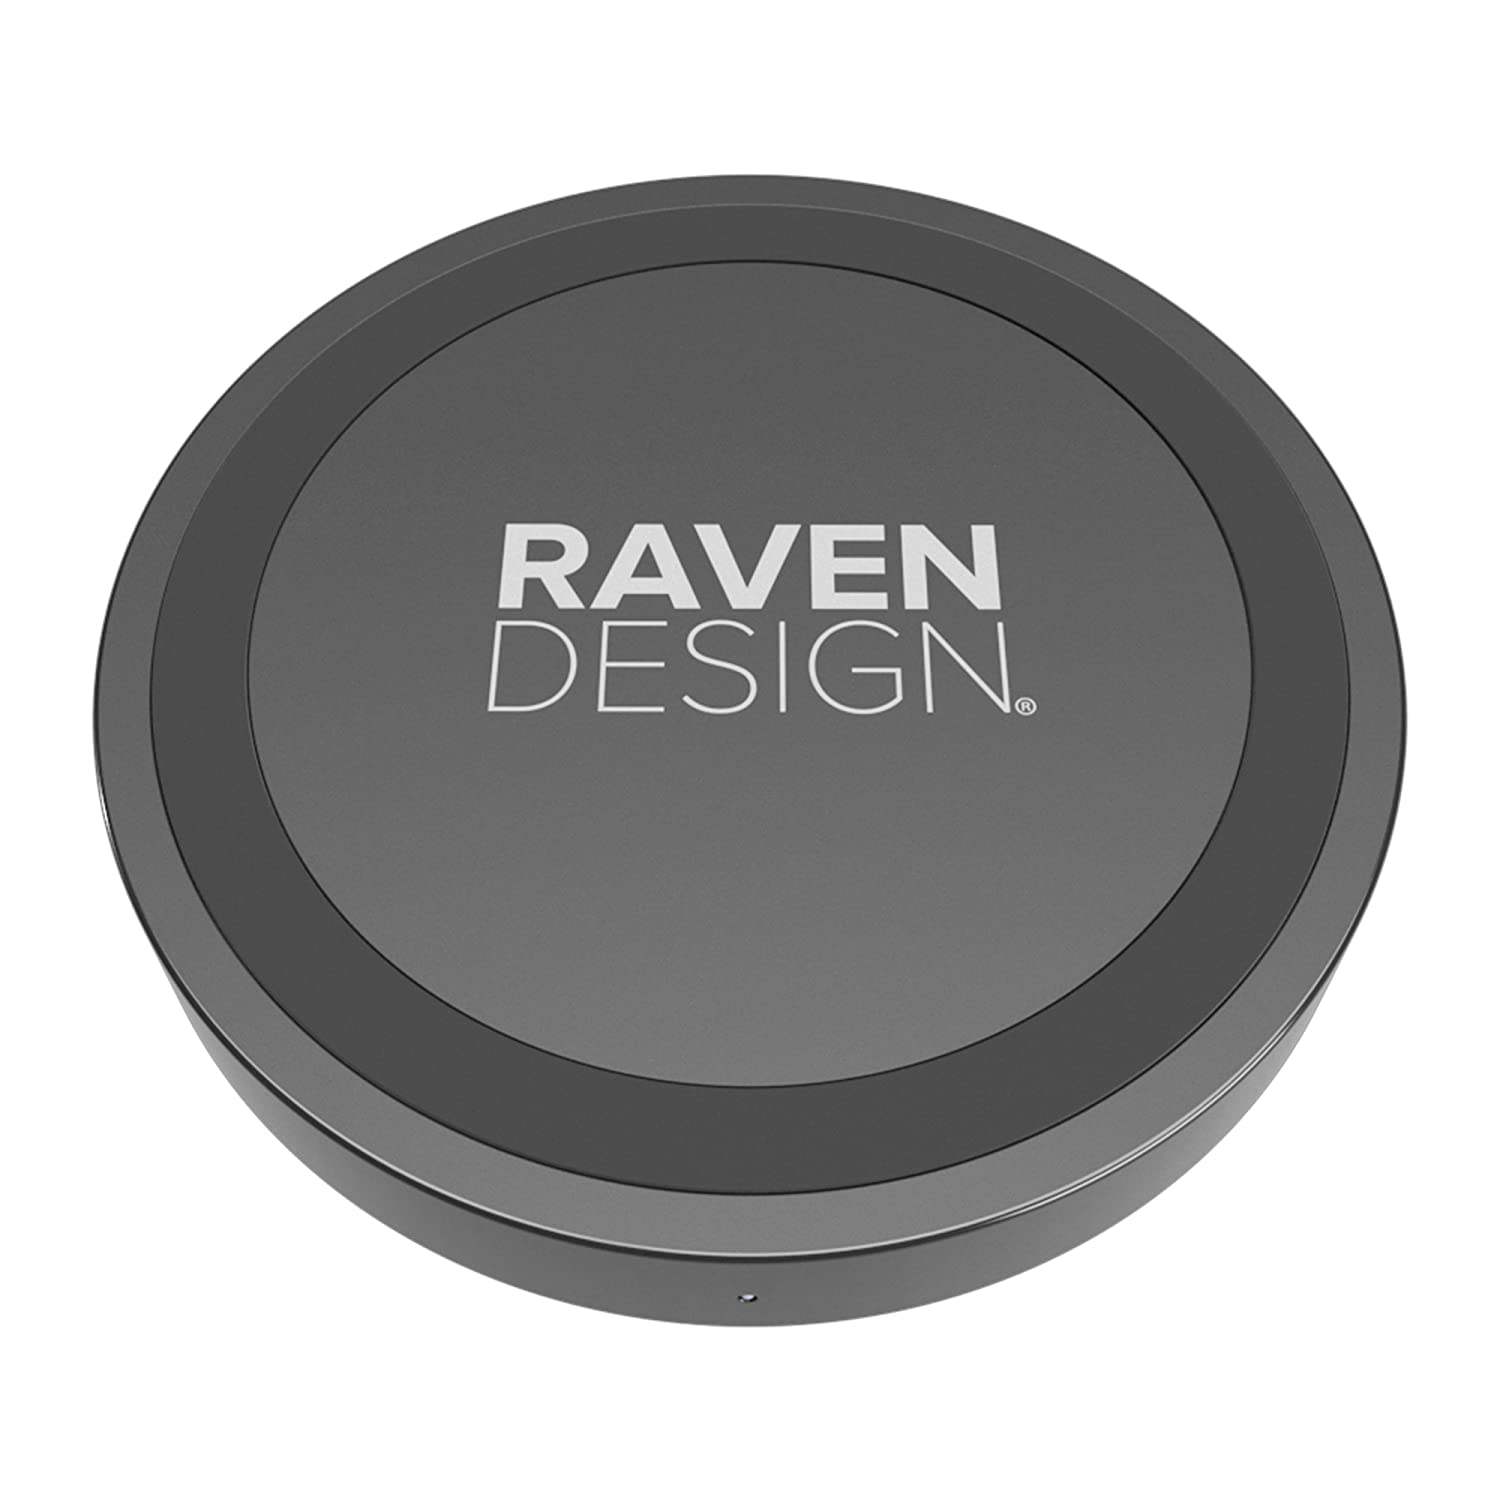 Raven design Chargeur /à Induction 5W pour Galaxy S9//S9 S8//S8+//Note 8//S7 Noir Mat